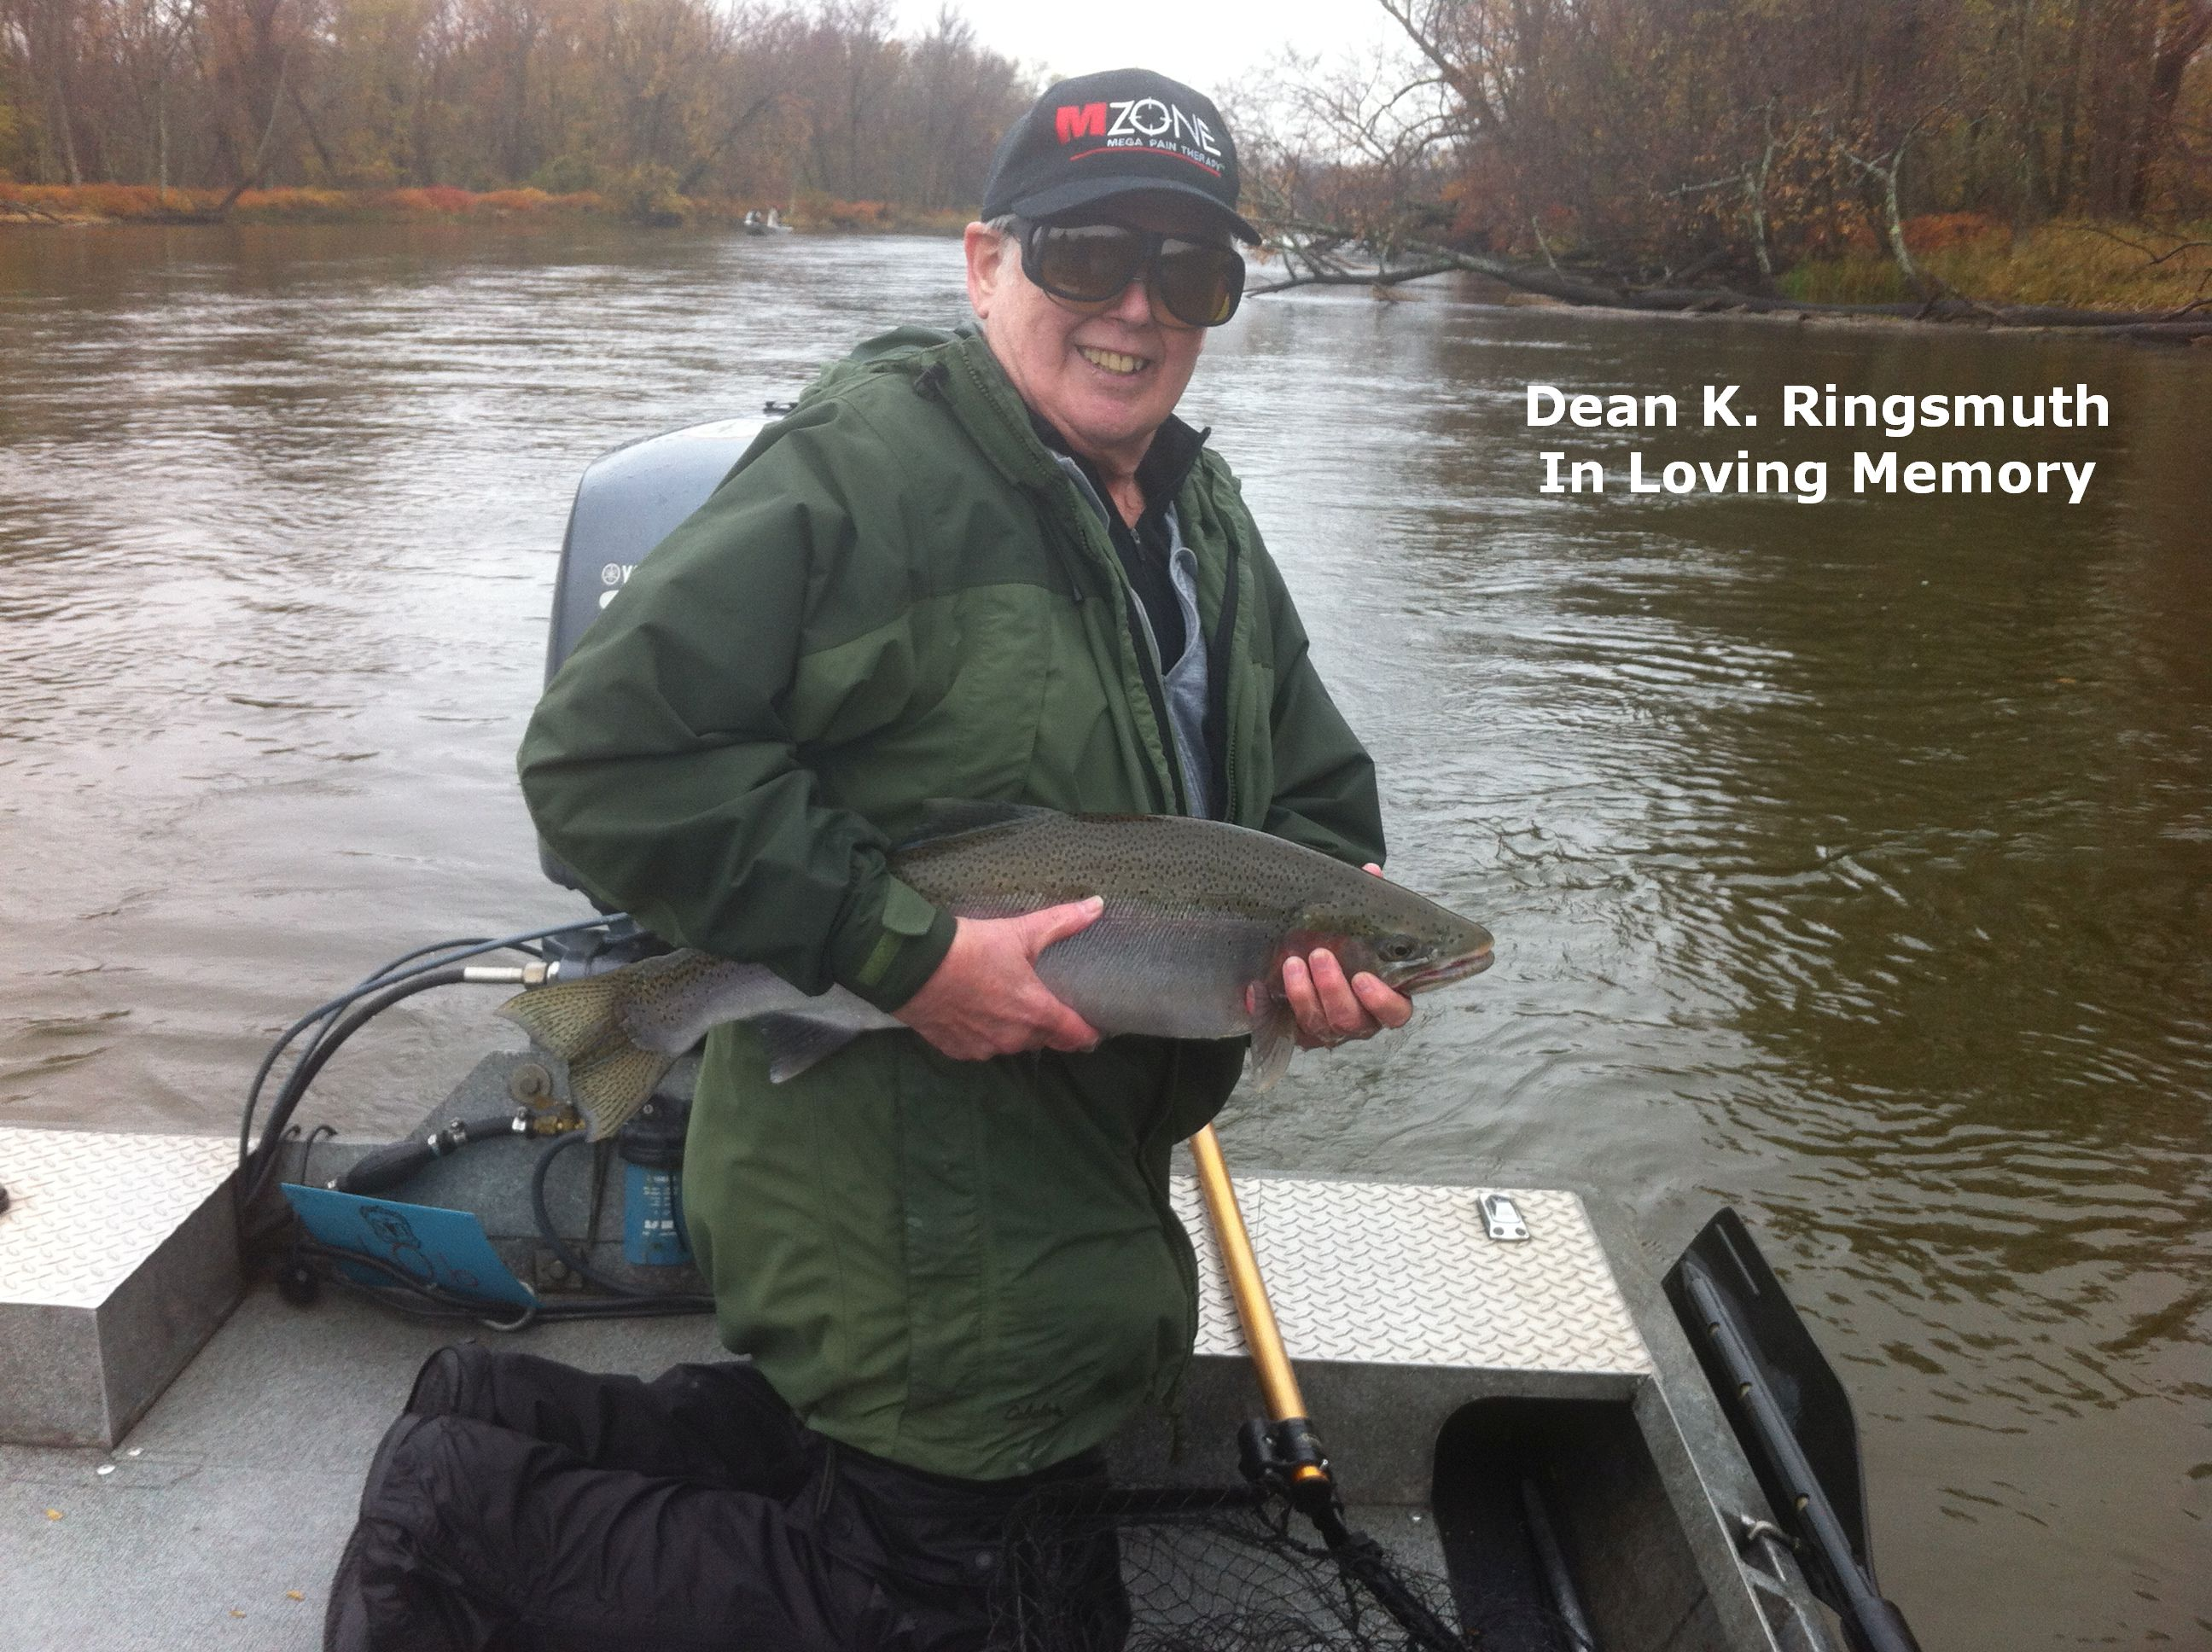 Dean loved fishing and all rivers. He helped Norm clean the river whenever he could. We miss him.